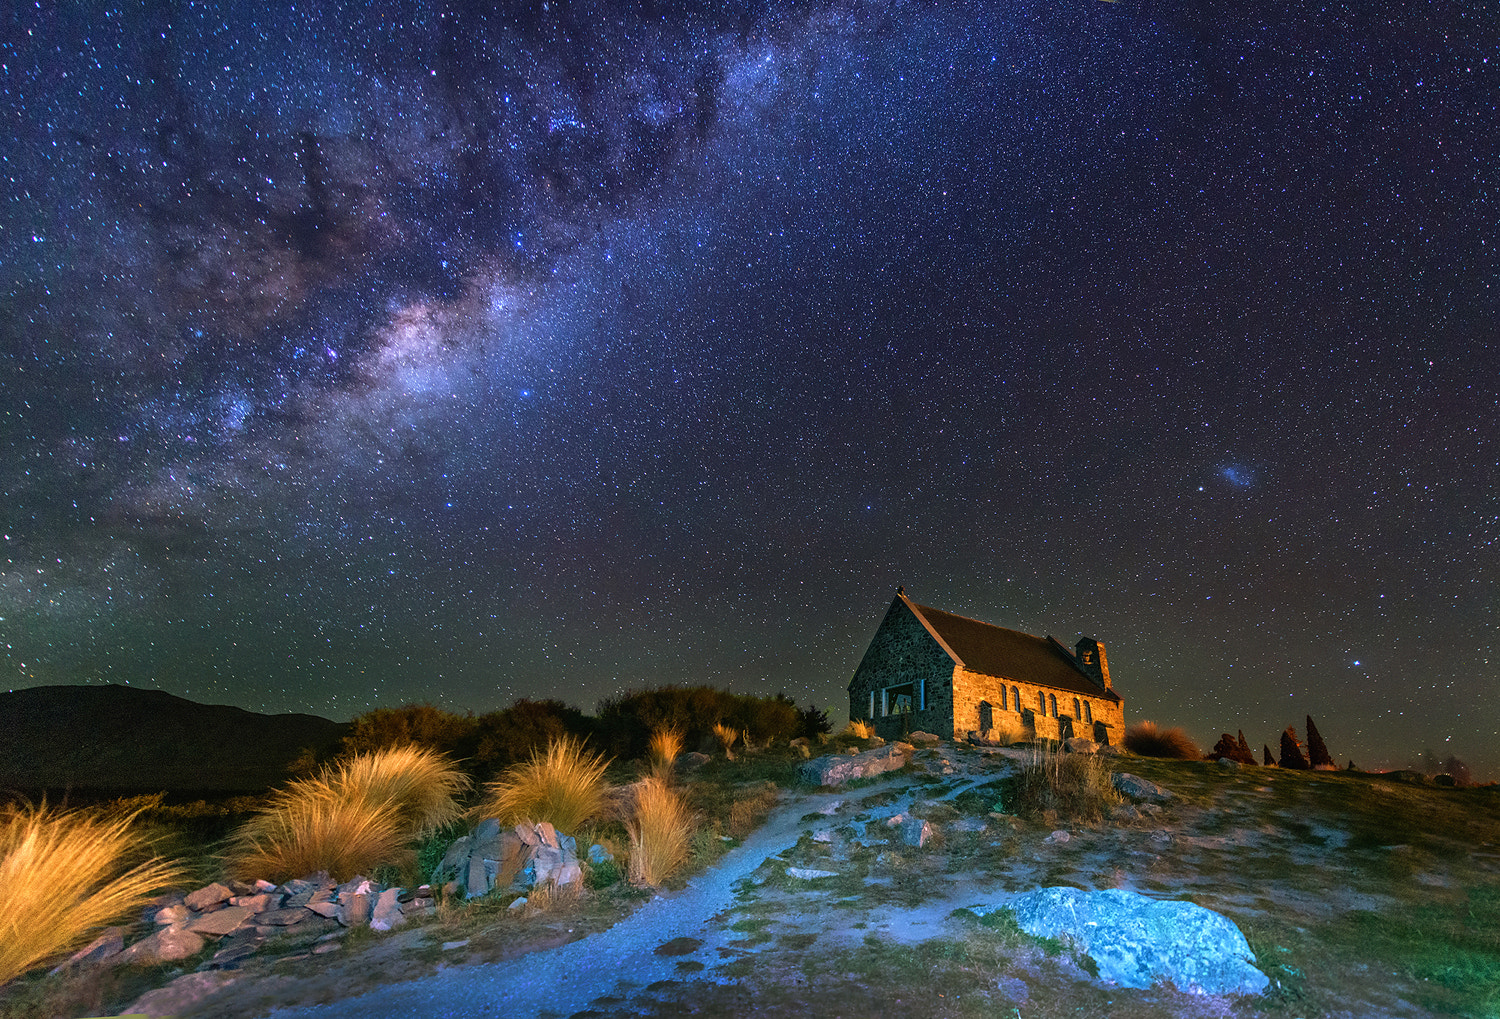 Photograph Church of the Good Shepherd, Lake Tekapo, New Zealand by sarawut Intarob on 500px